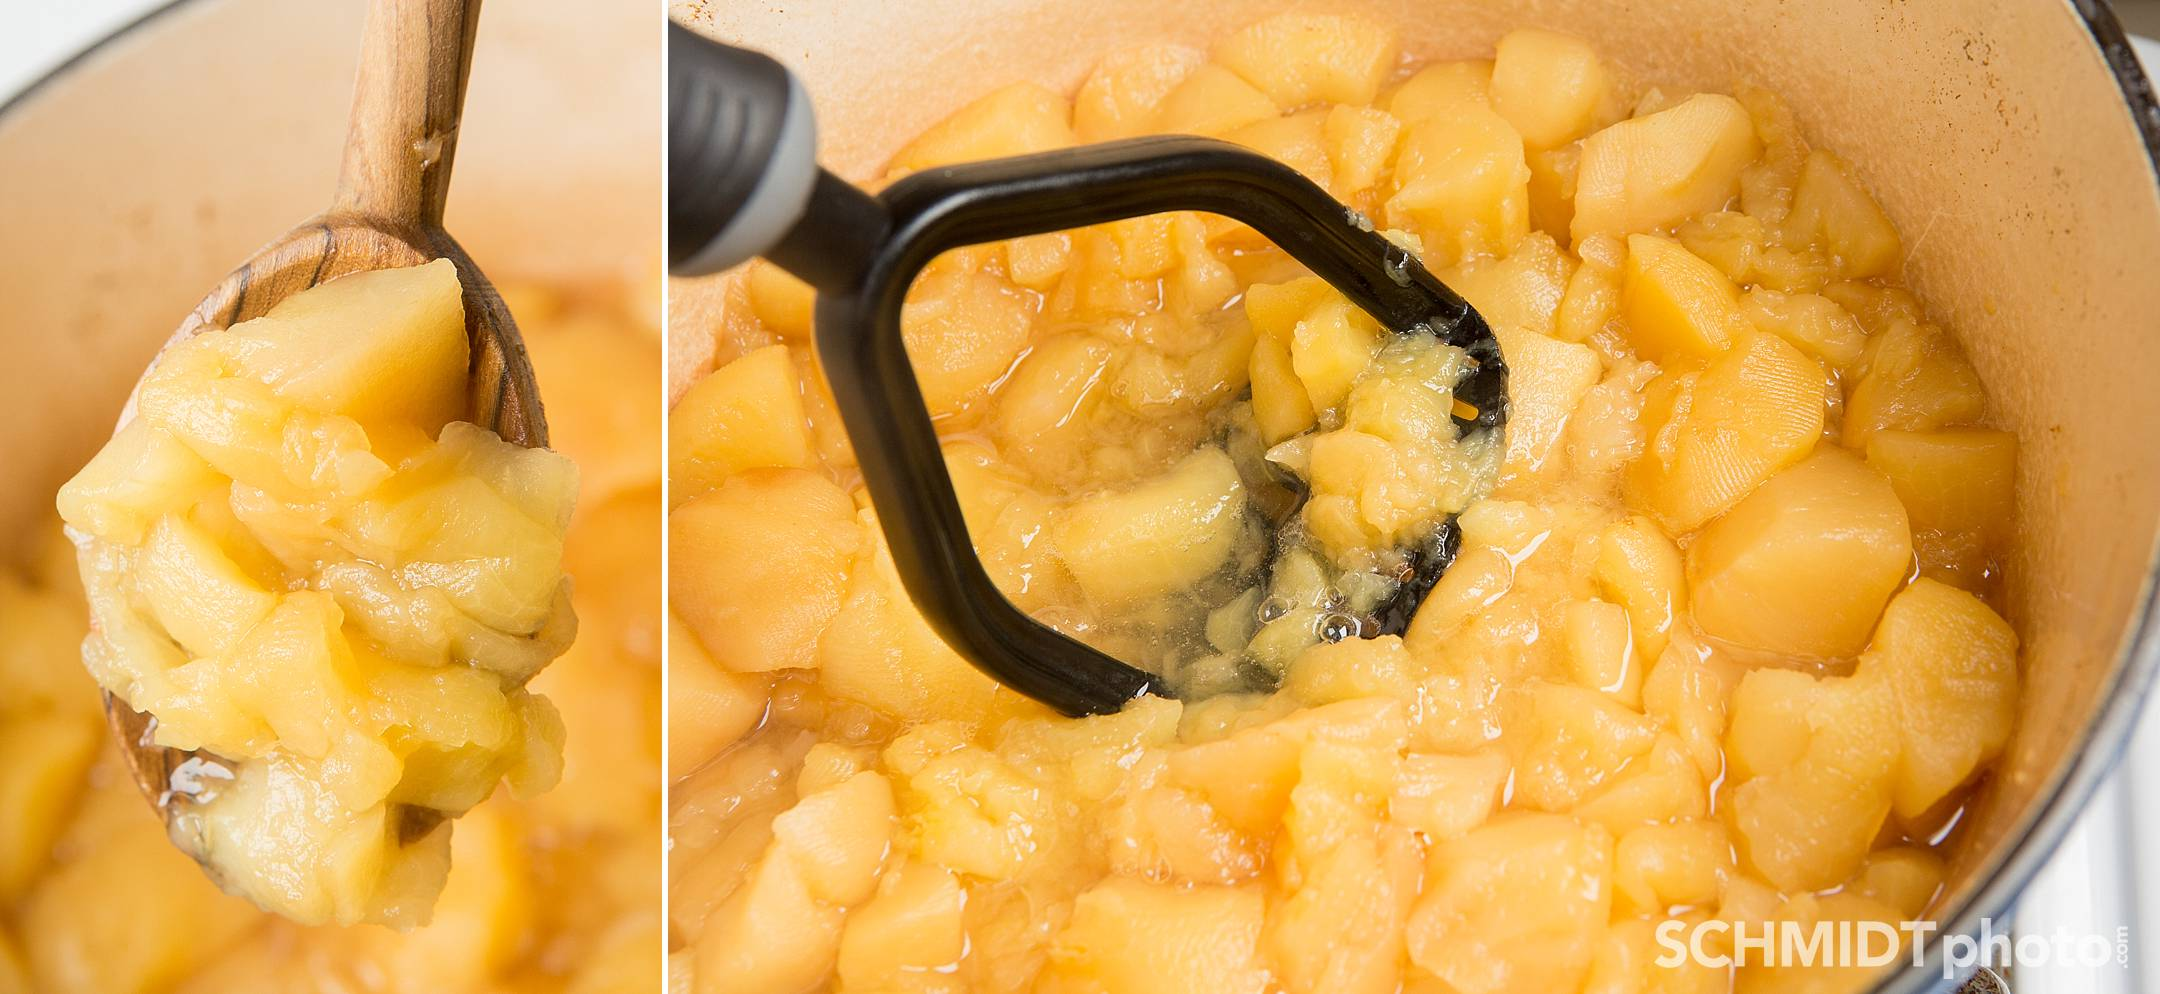 Applesauce recipe for homesteading and simple food recipes